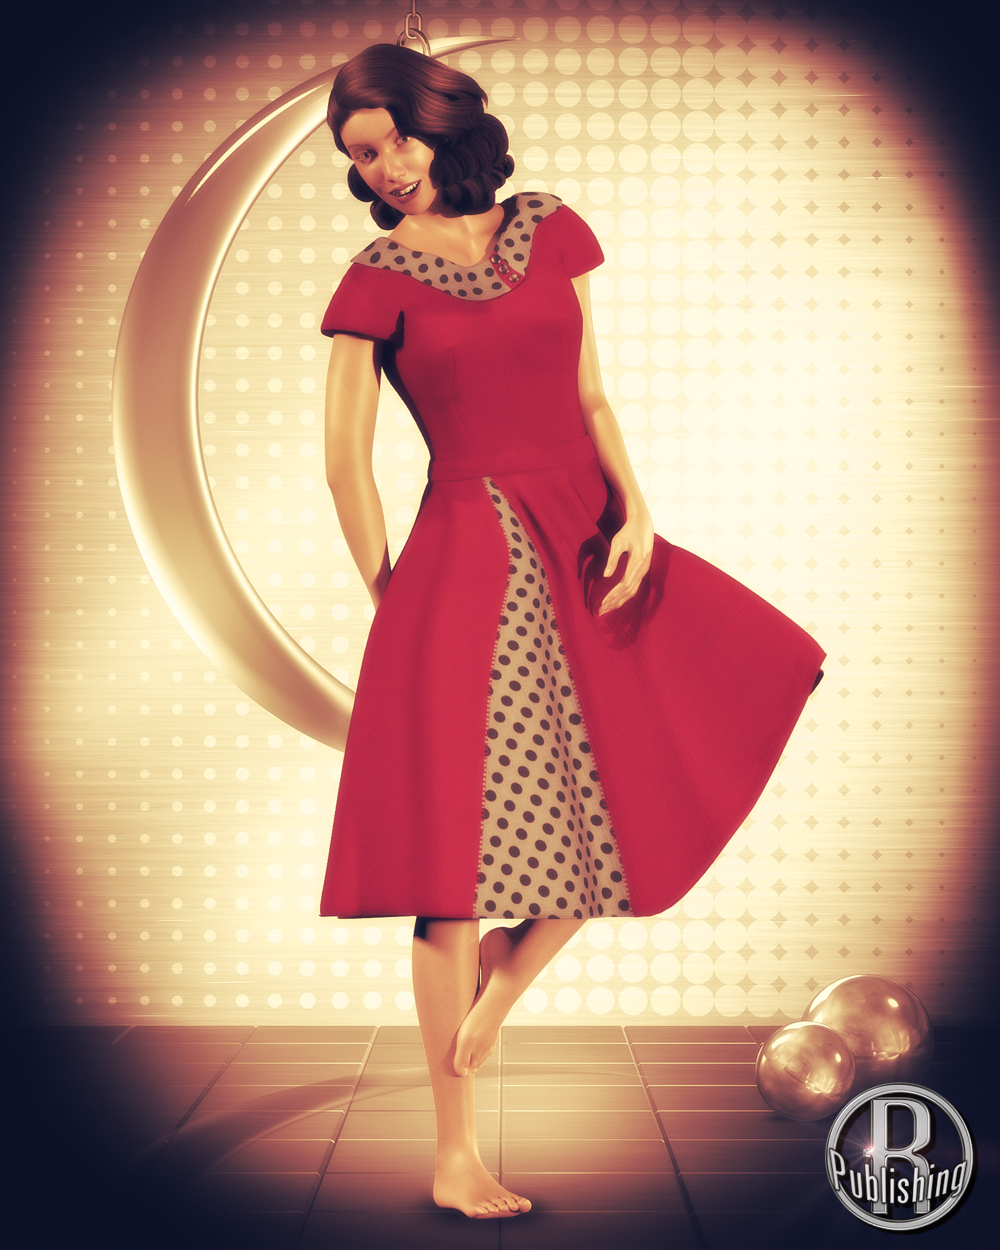 Touch of Retro by RPublishing